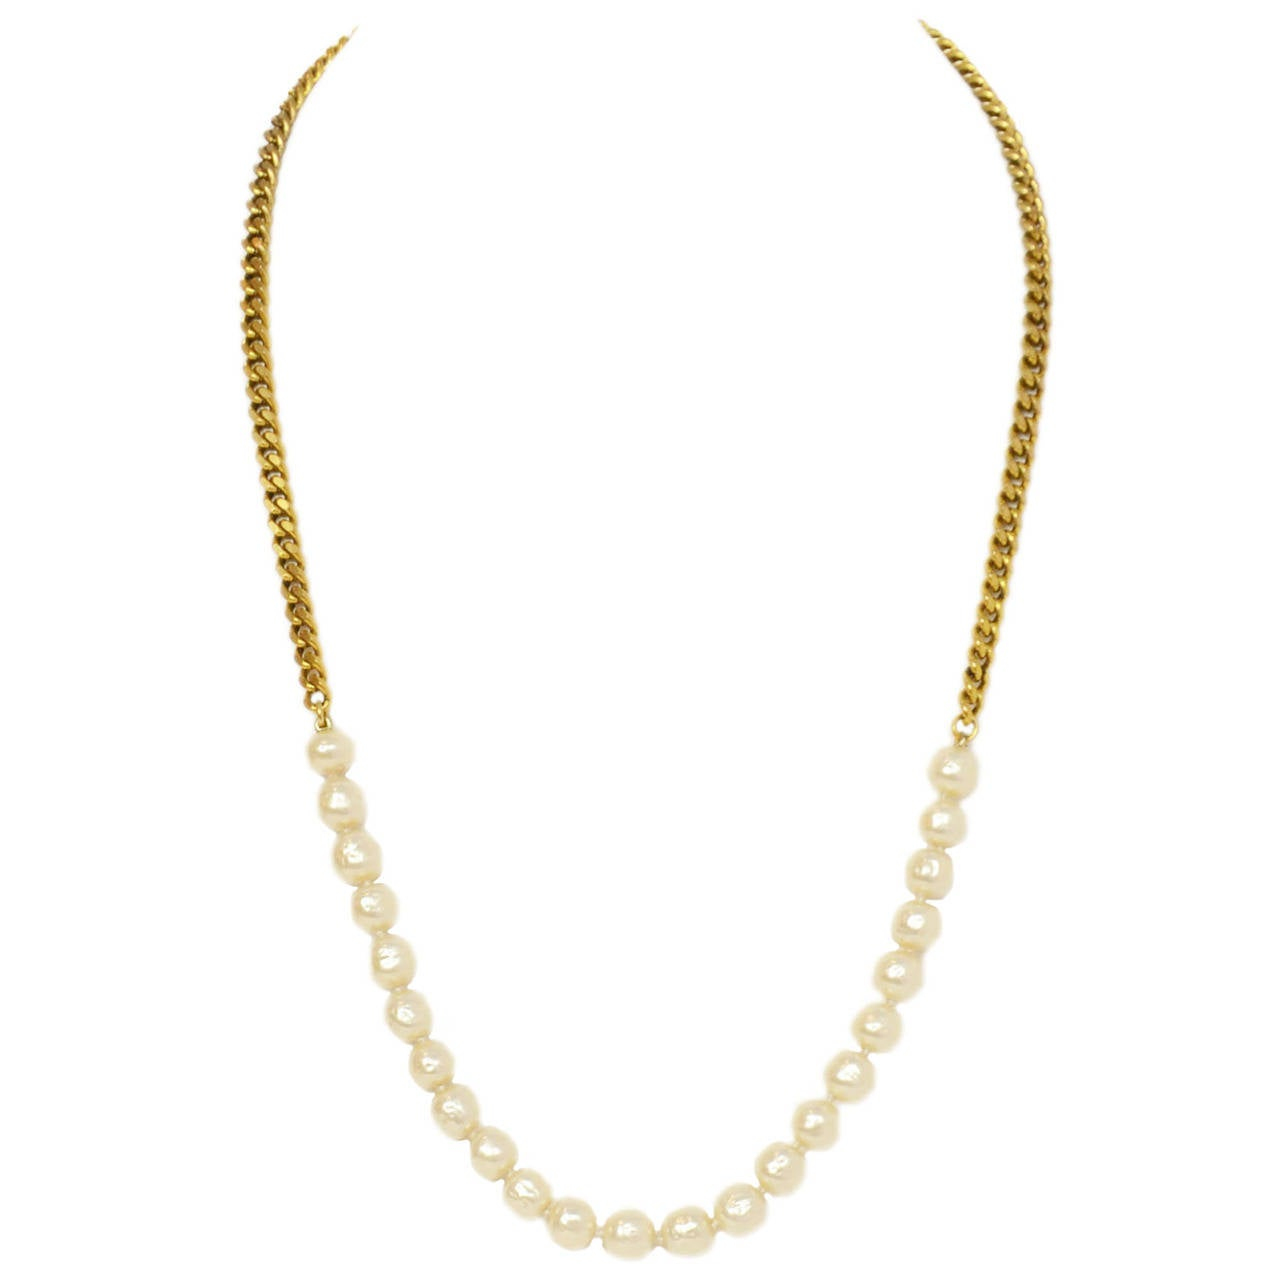 Chanel Vintage '84 Gold Chain & Pearl Necklace  Made in: France Year of Production: 1984 Stamp: CHANEL CC 1984 Closure: Hook Color: Goldtone and ivory Materials: Metal and faux pearls Overall Condition: Excellent with the exception of some